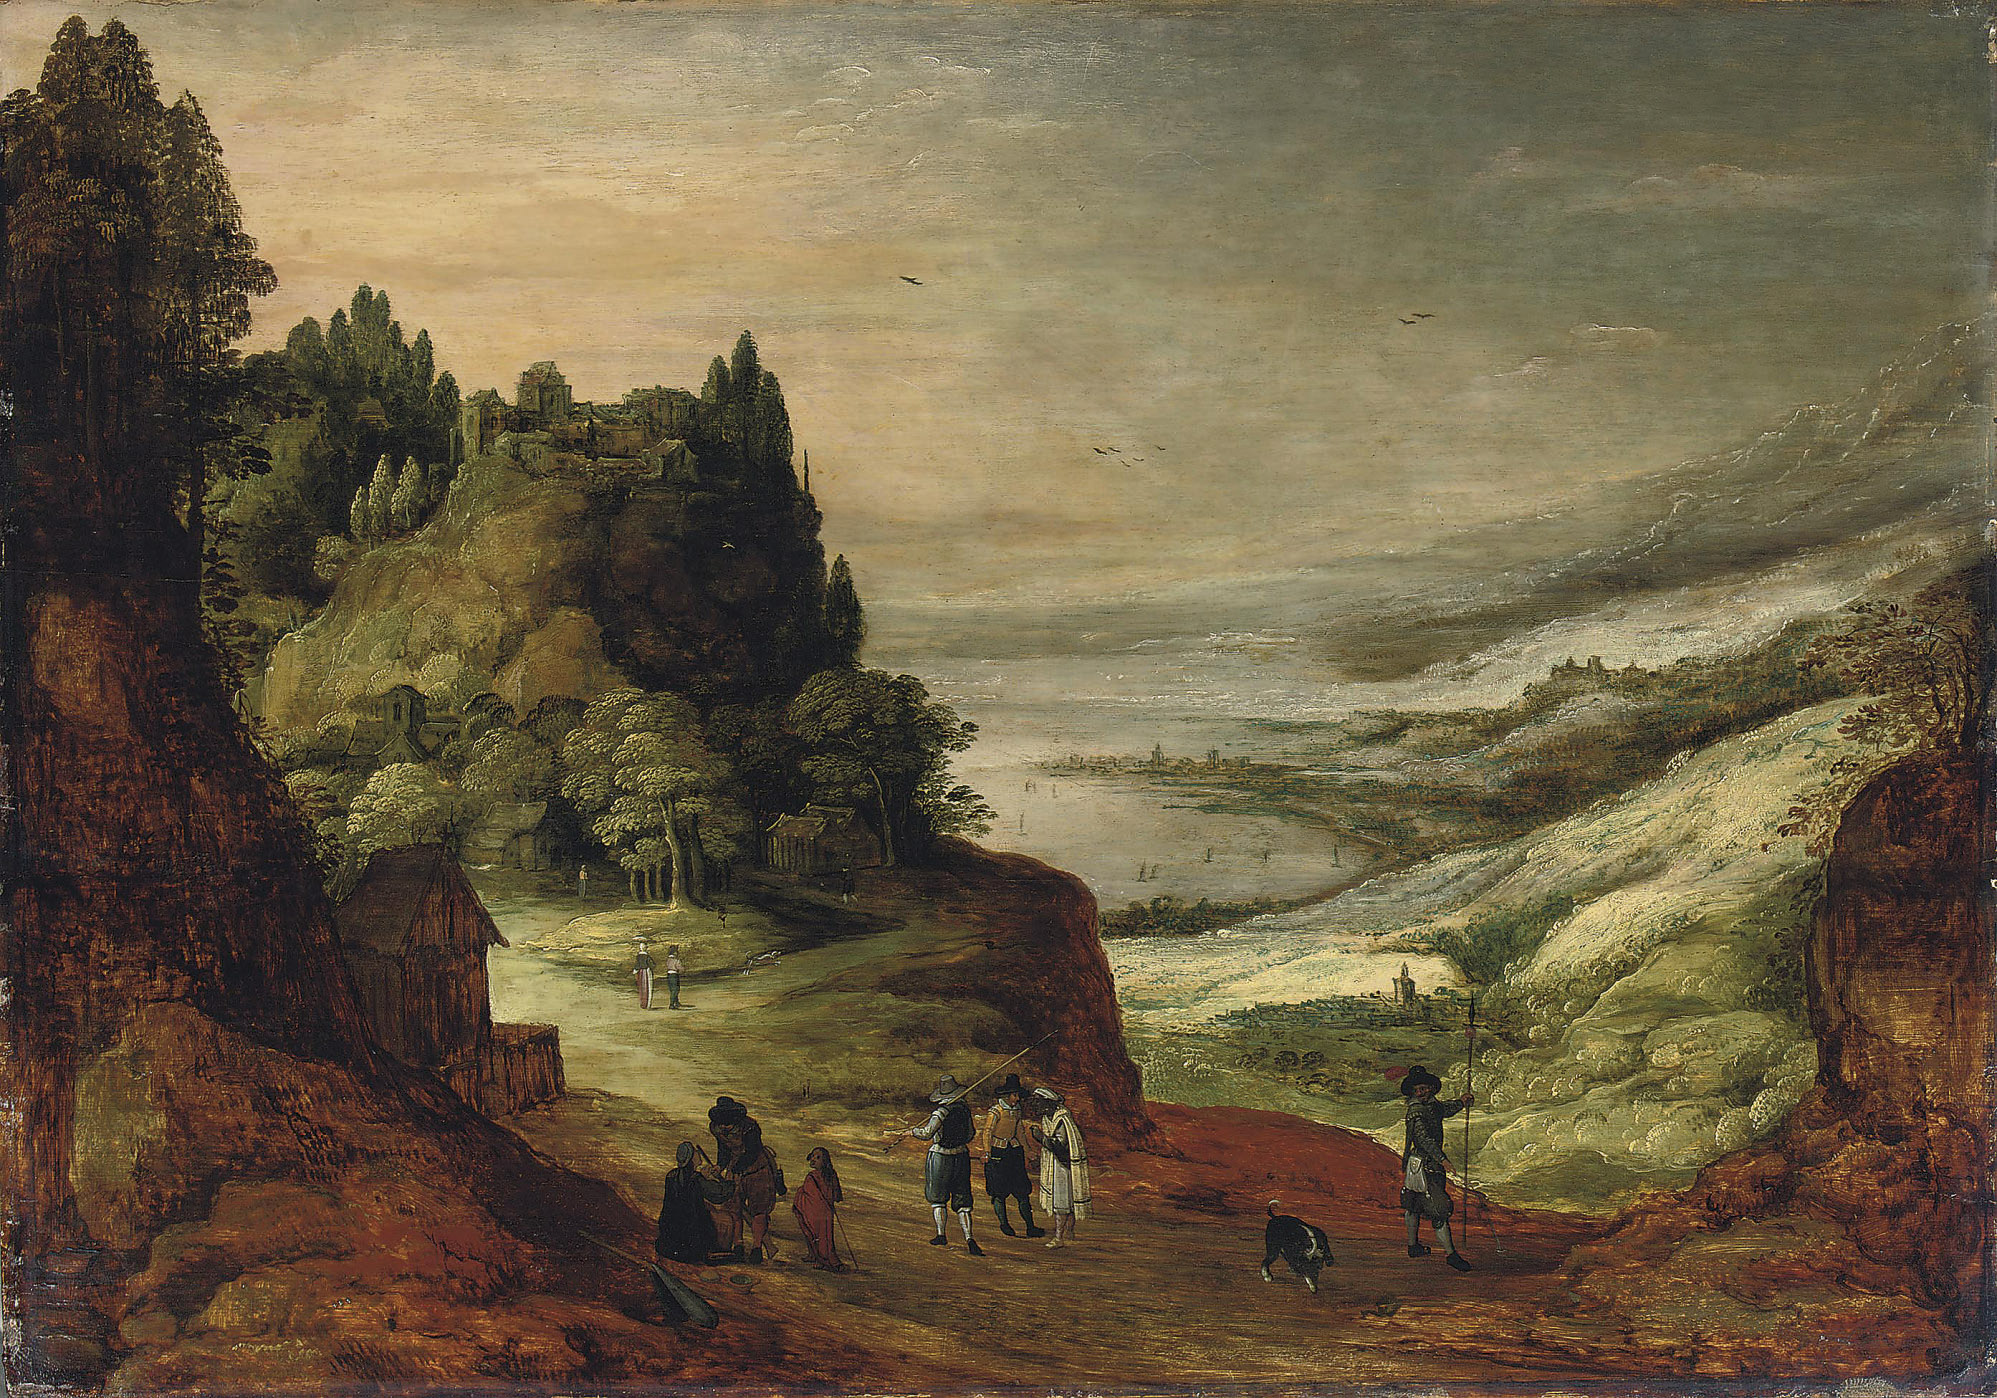 An extensive mountainous river landscape with figures conversing on a track, a village beyond